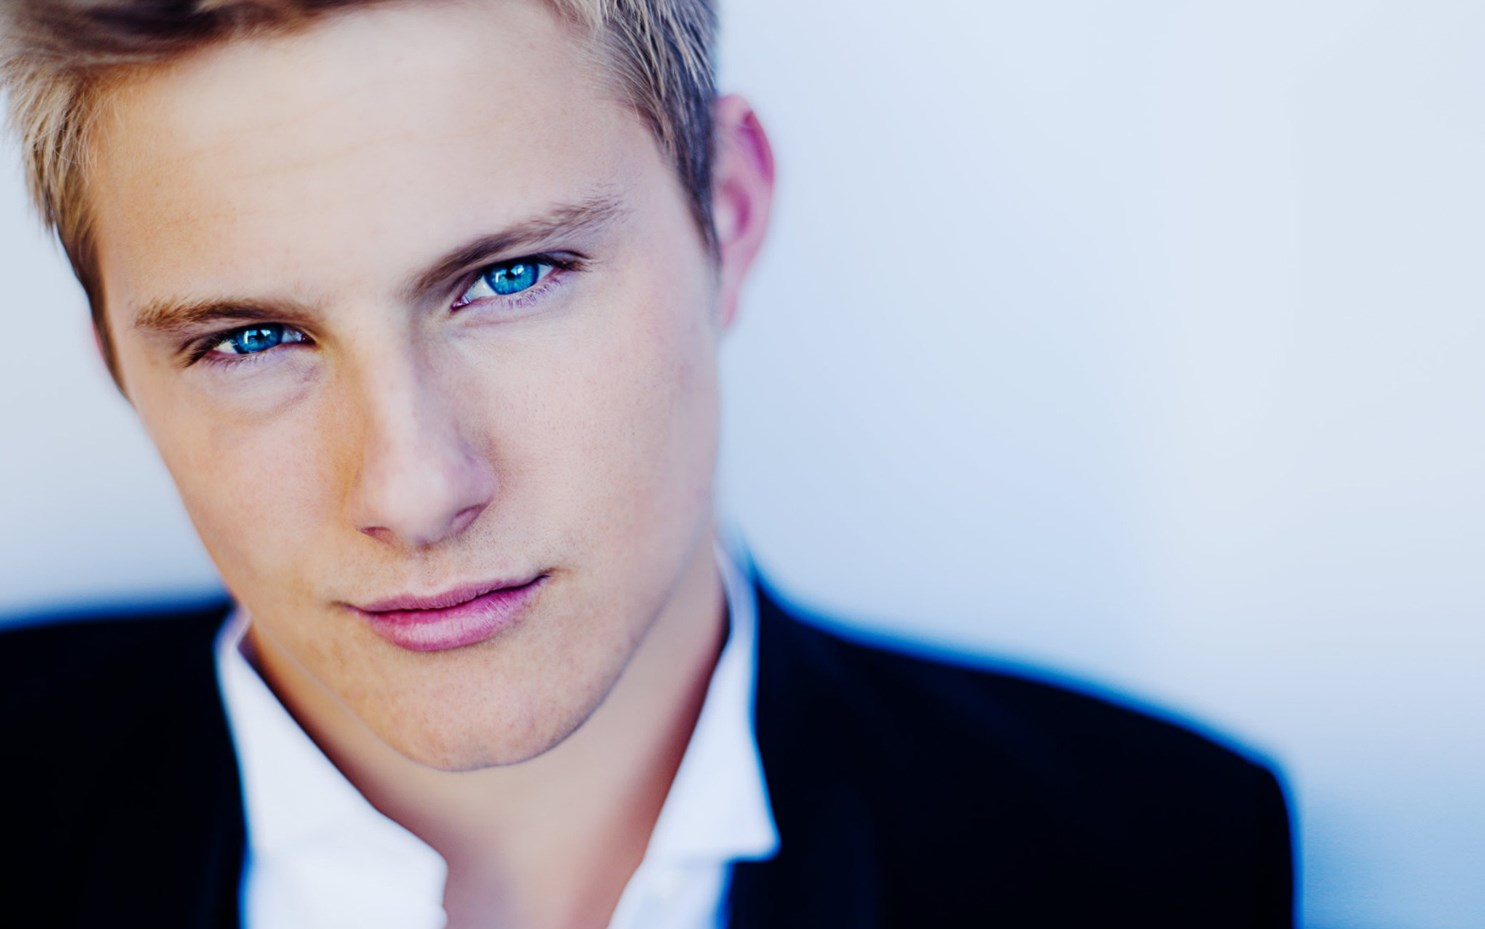 Alexander Ludwig - Height, Weight and Body Measurements